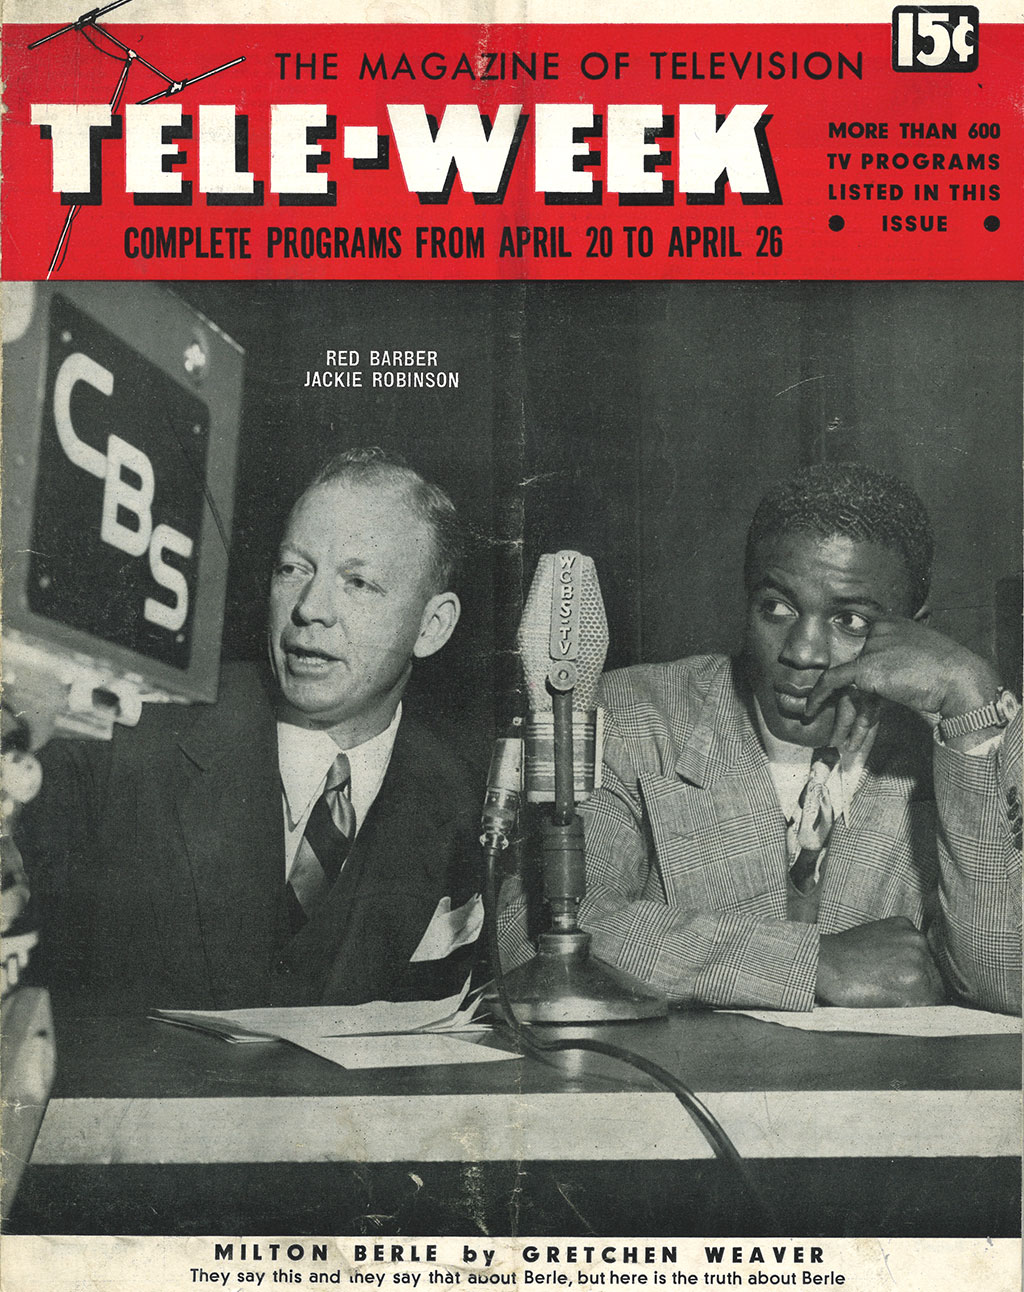 "<em>Tele-Week</em> ""The Magazine of Television"" with Jackie Robinson and Red Barber cover, c. 1950's<br/>Jackie Robinson Museum Collection"